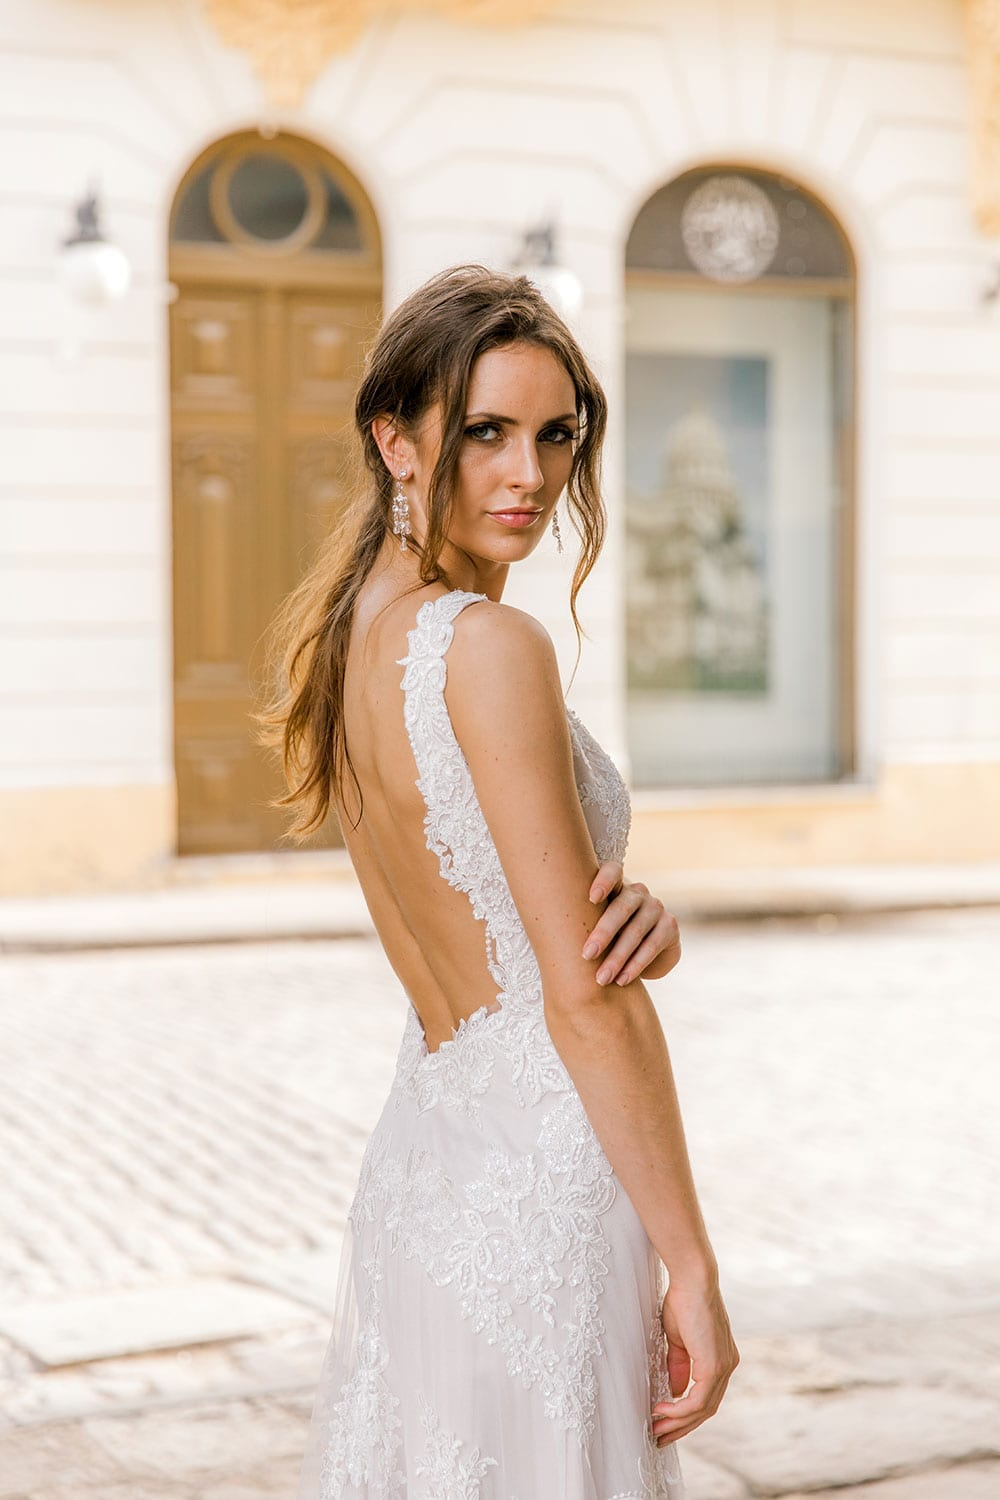 Model wearing Vinka Design Olivia Wedding Dress Low Back V-Neck Beaded Lace Wedding Gown between white pillars with old archways of Cuban buildings in background